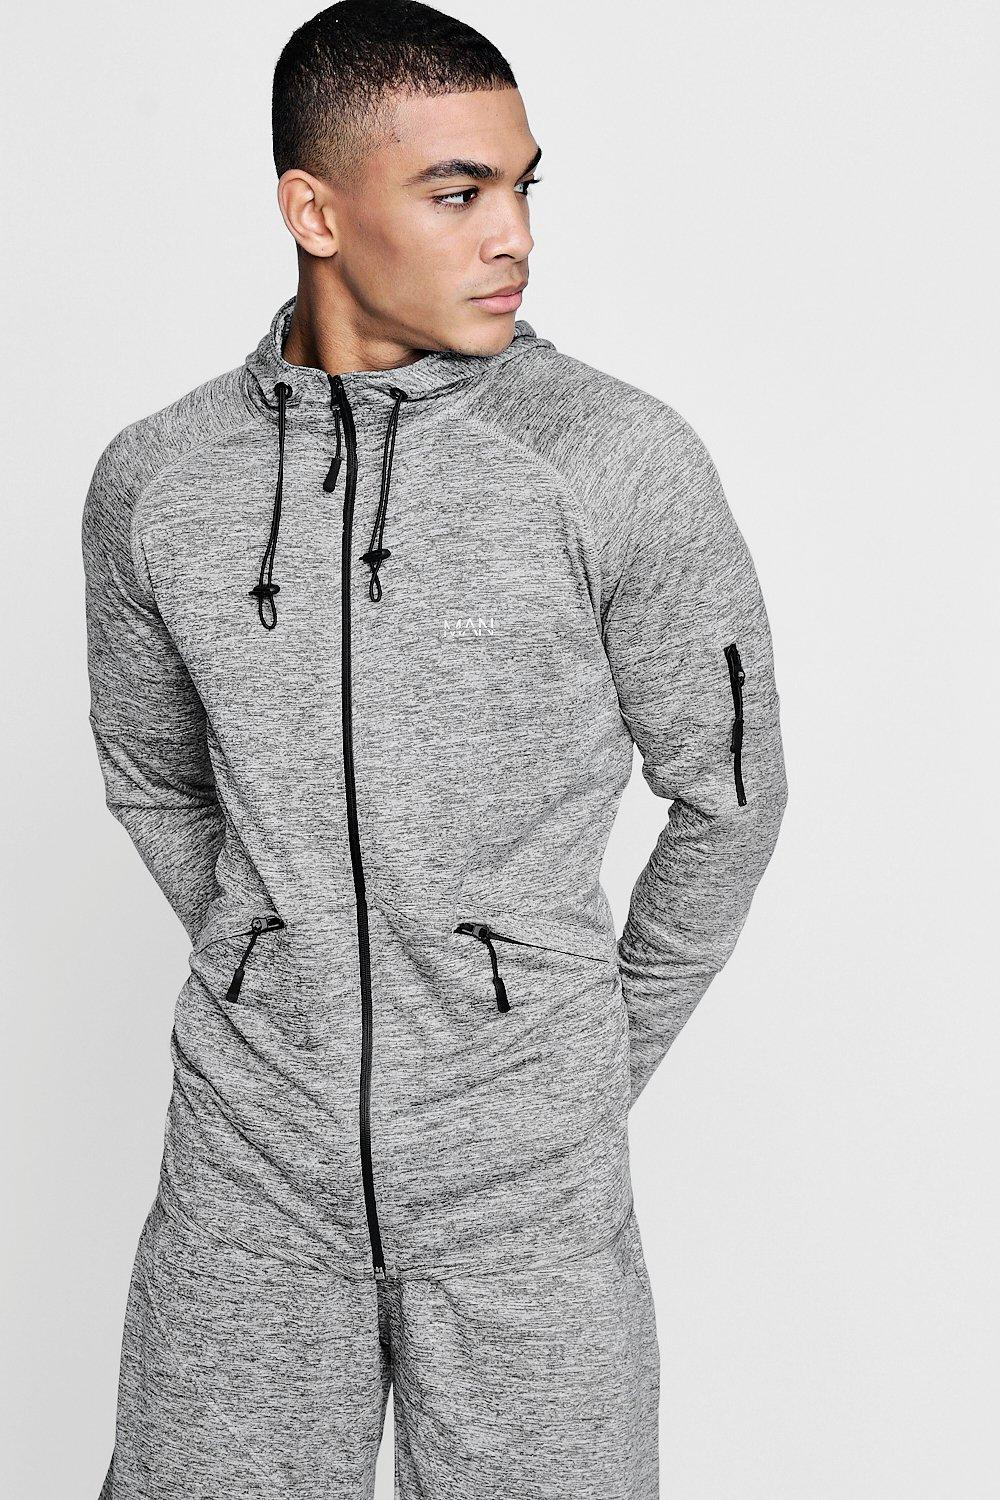 This is one of the best websites with gym clothing for men!